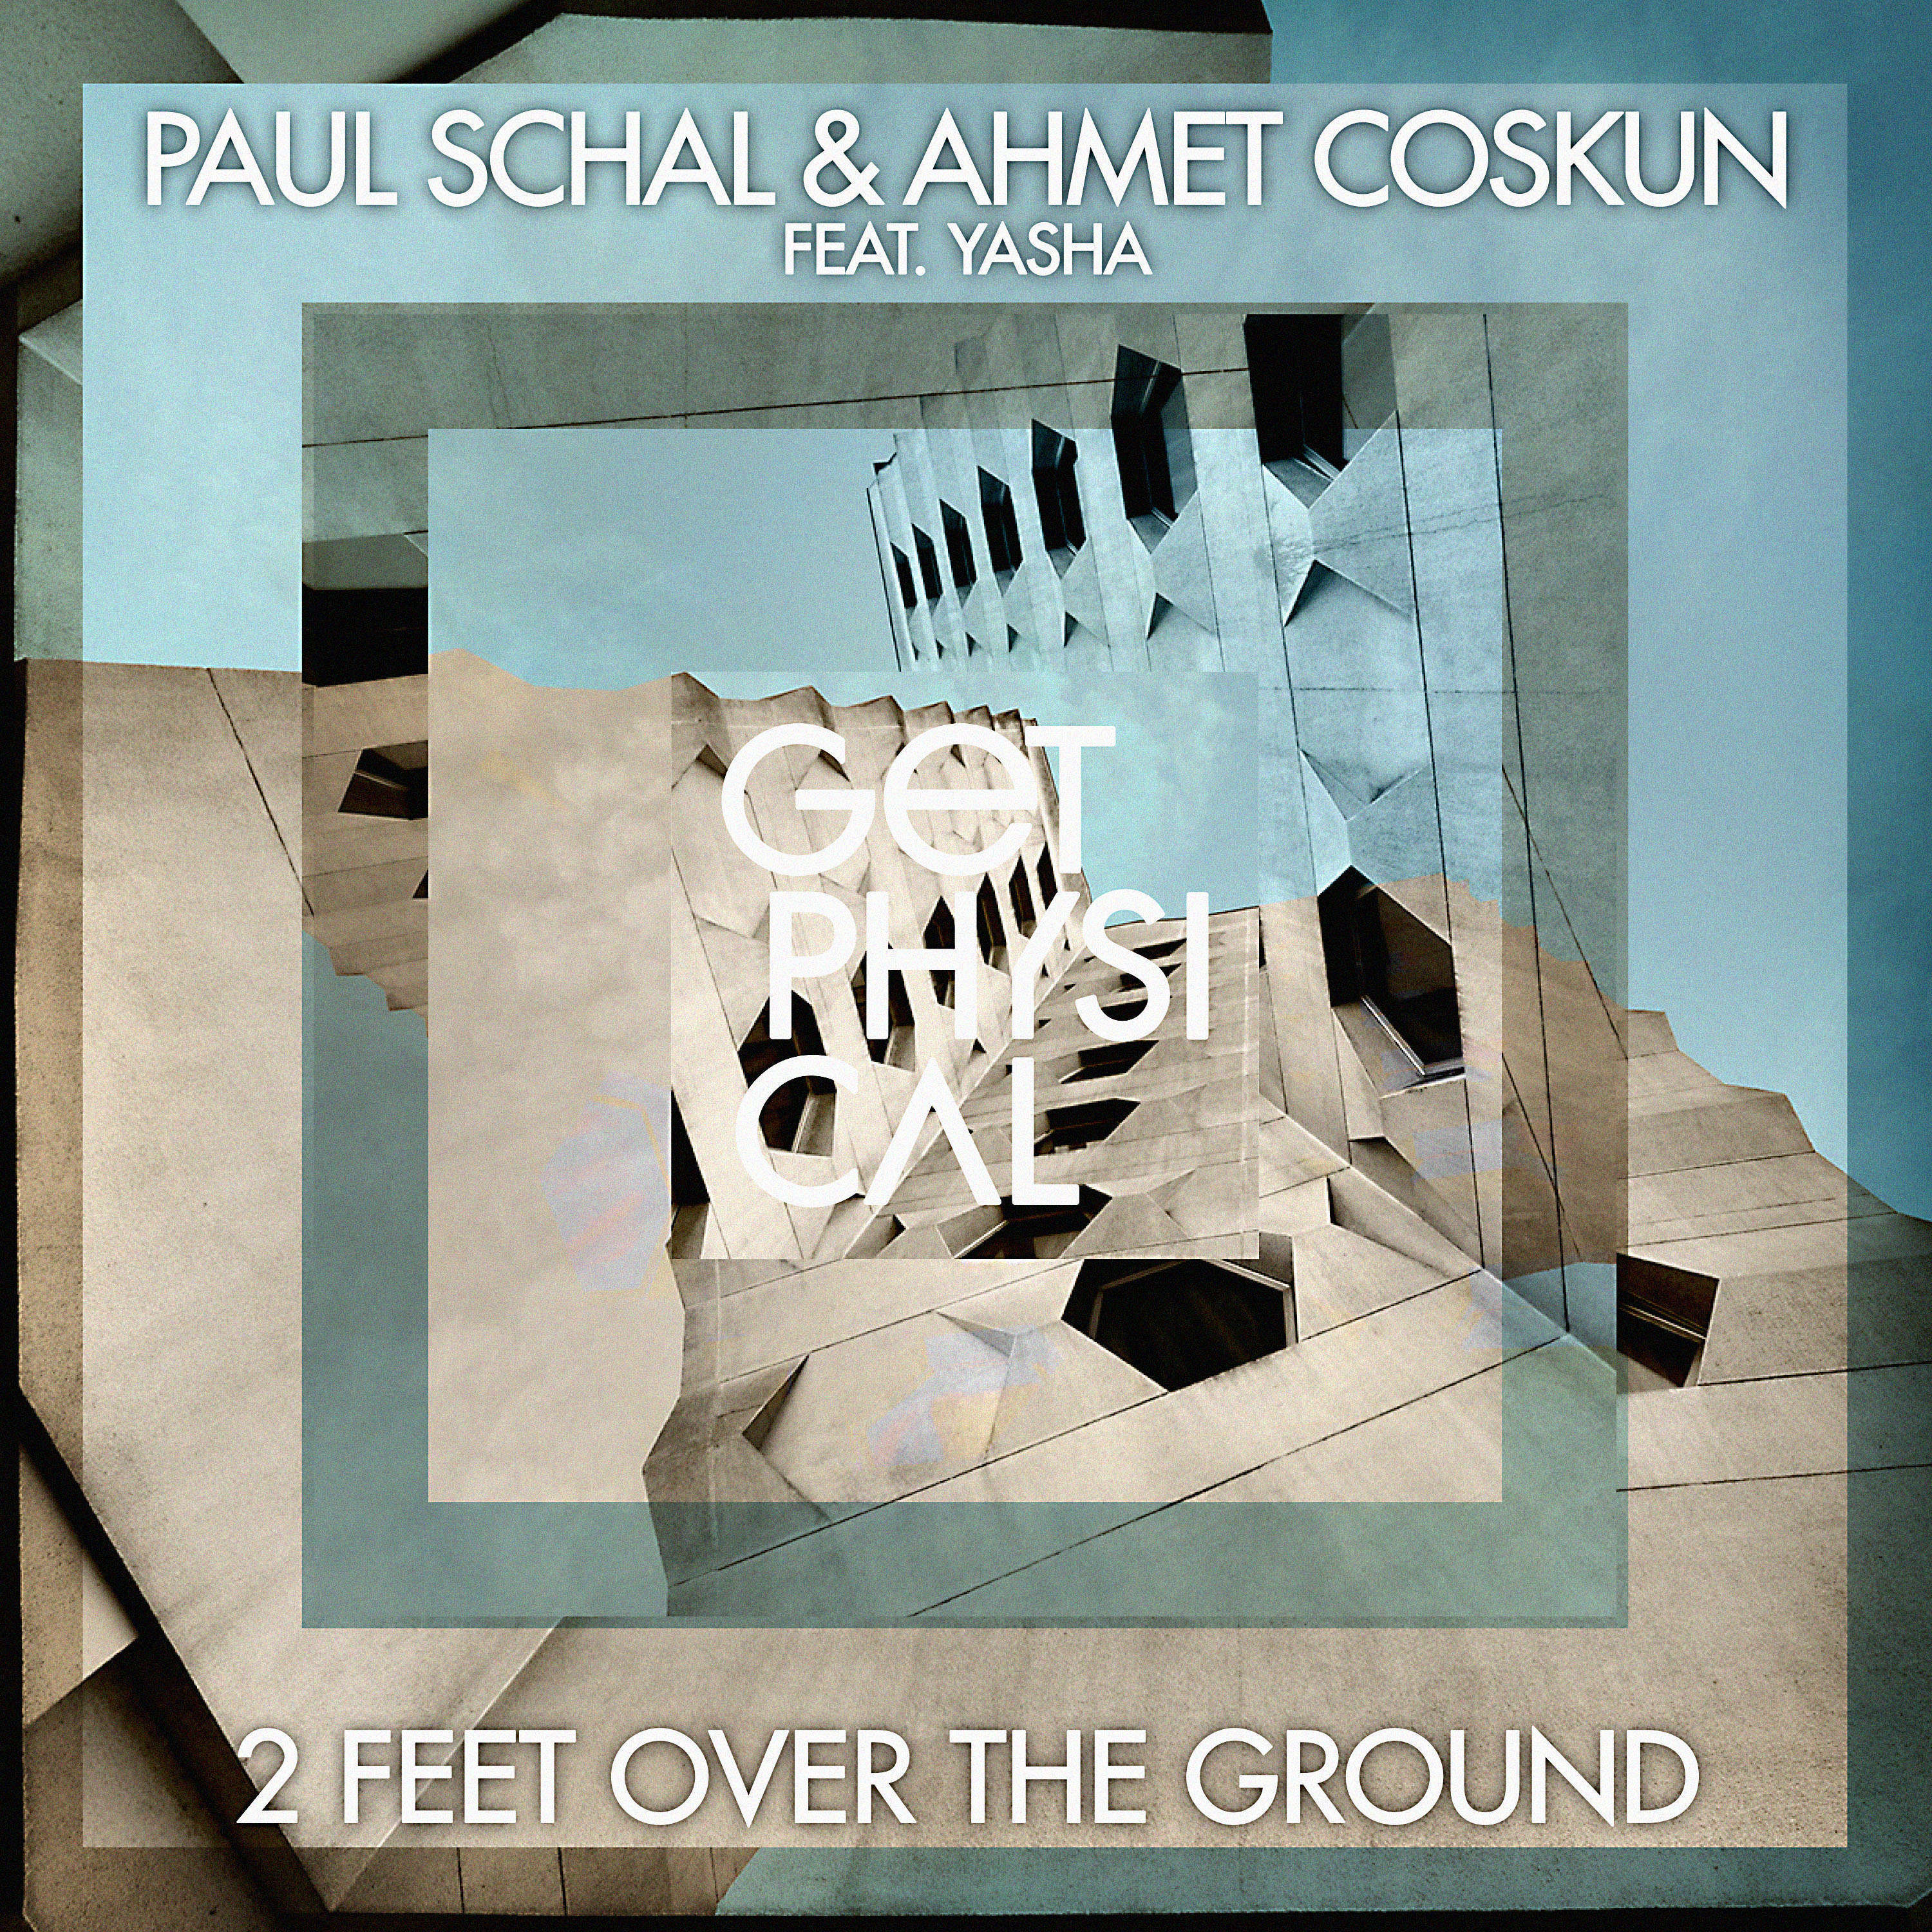 Paul Schal & Ahmet Coskun Feat Yasha- 2 Feet Over The Ground (The Cheapers Remix)(Get Physical)